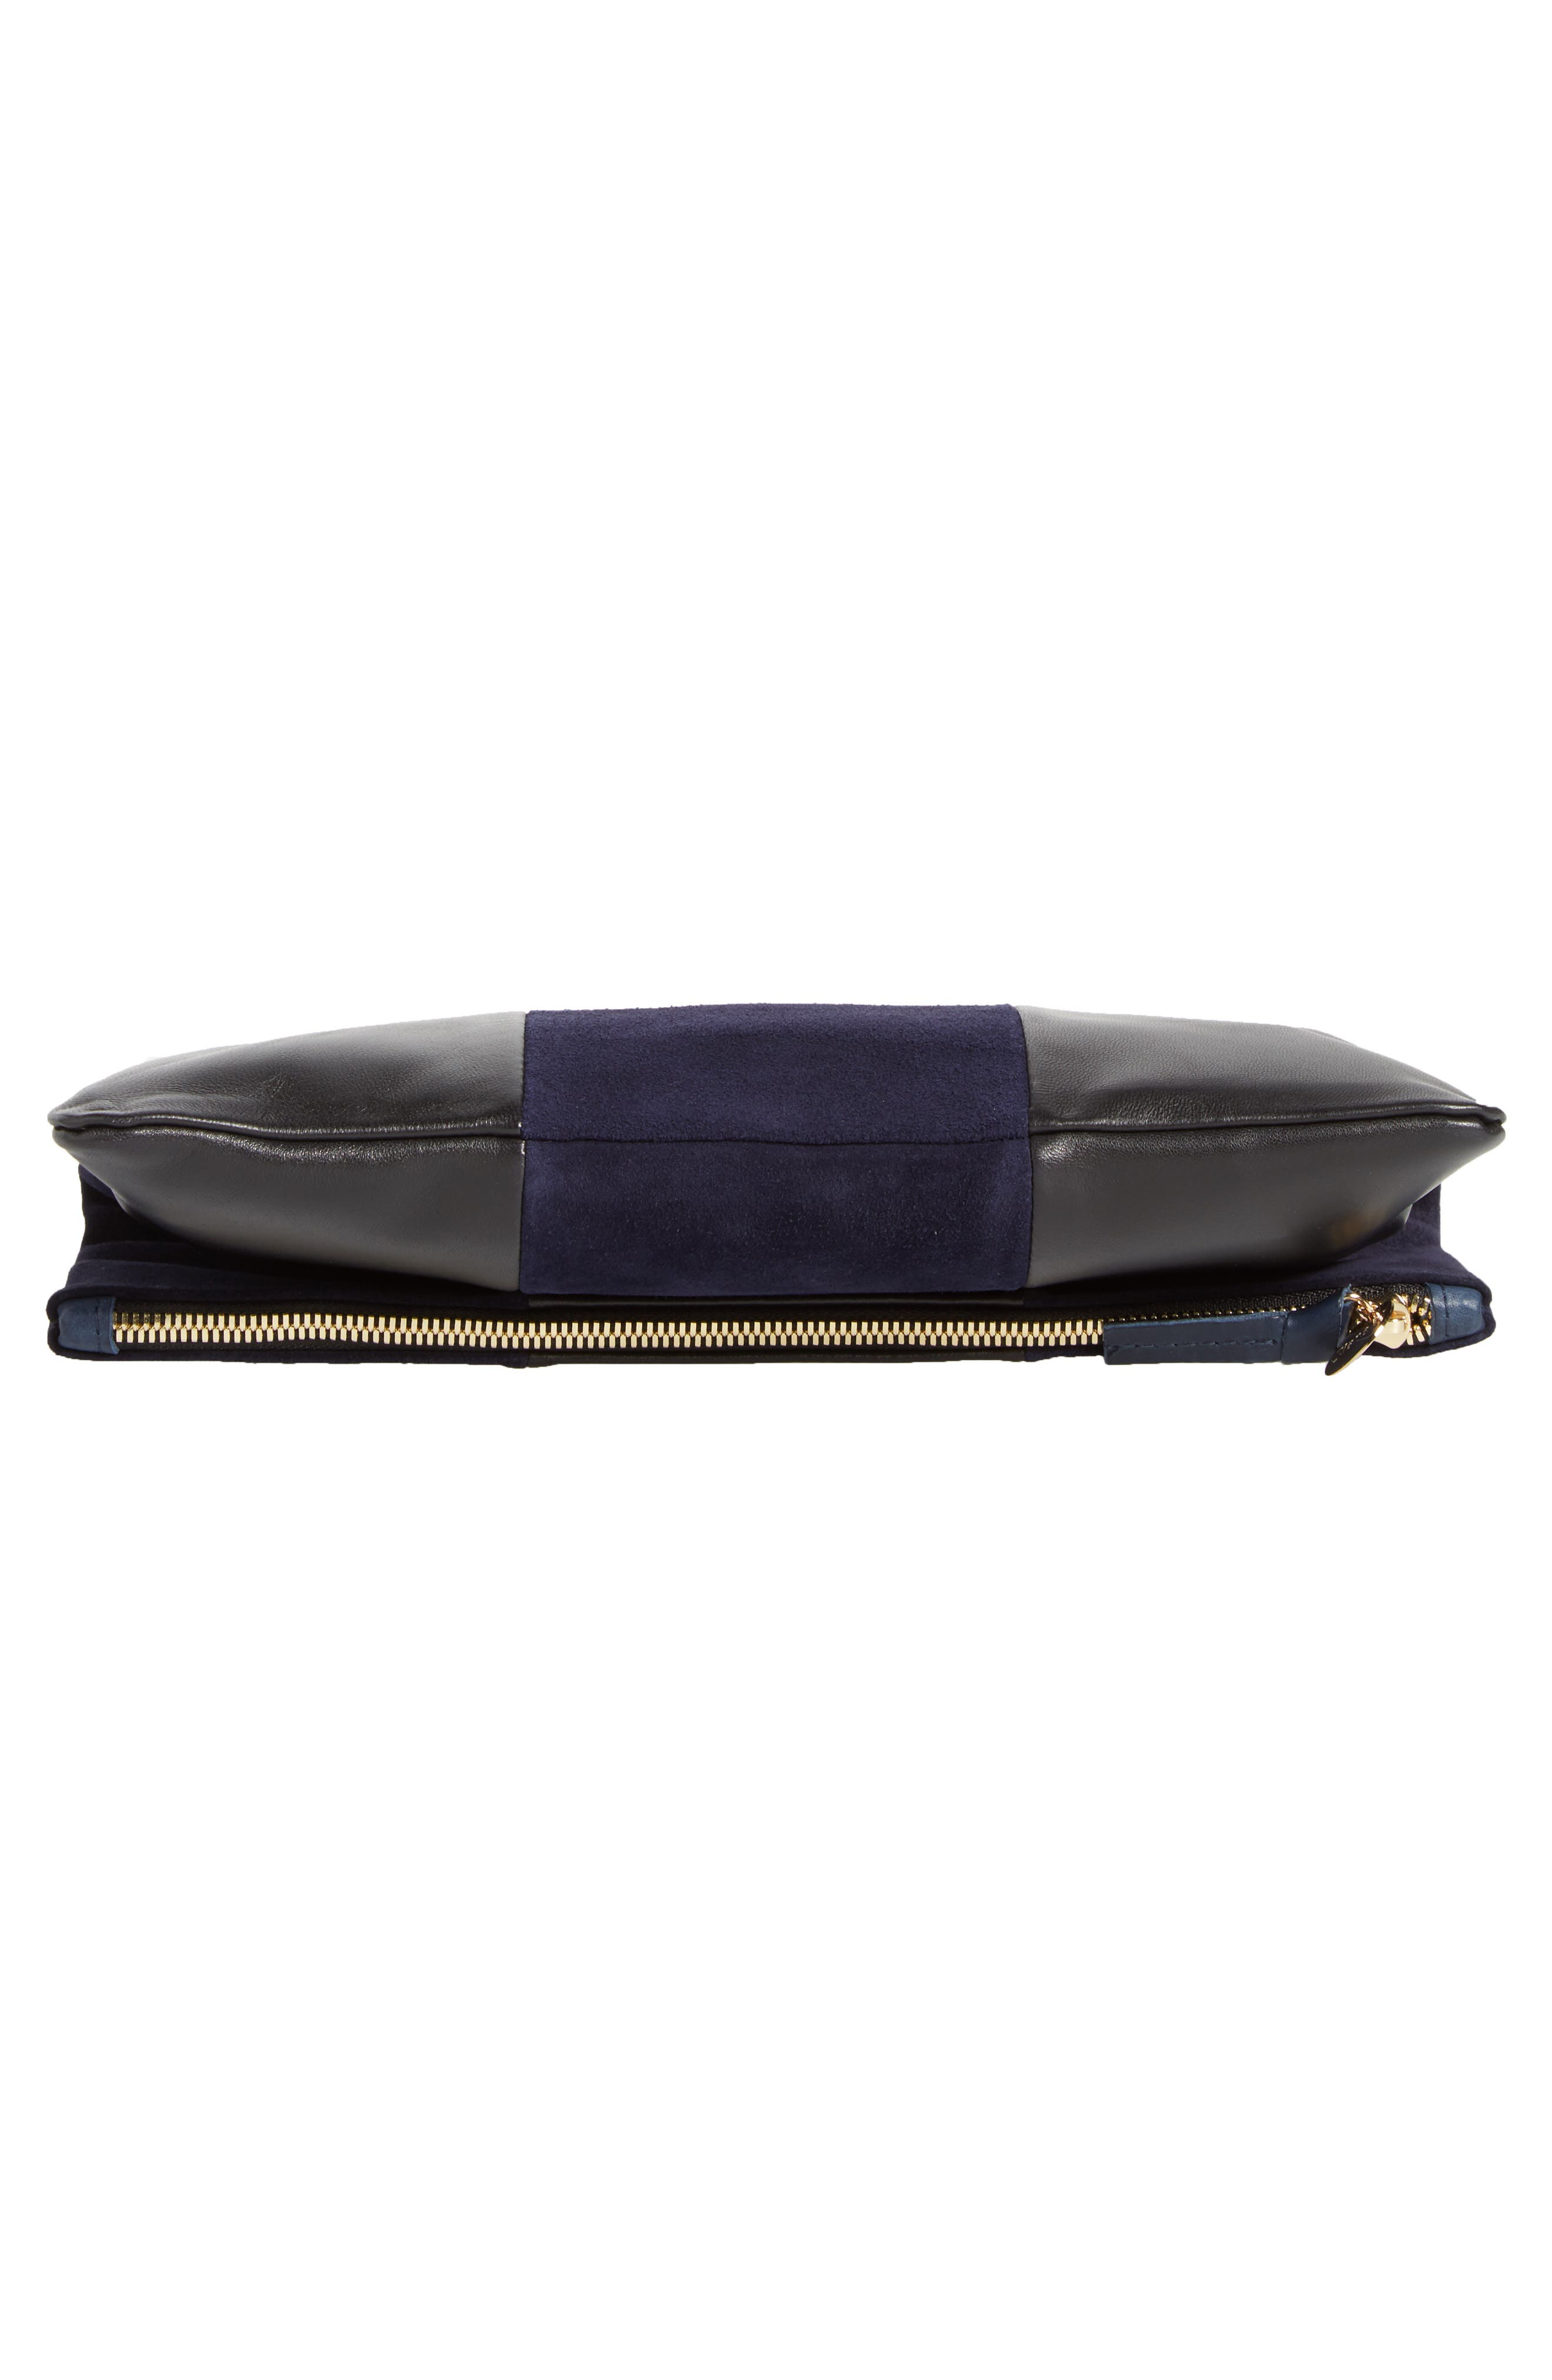 Leather & Suede Foldover Clutch,                             Alternate thumbnail 6, color,                             Black Nappa/ Navy Suede